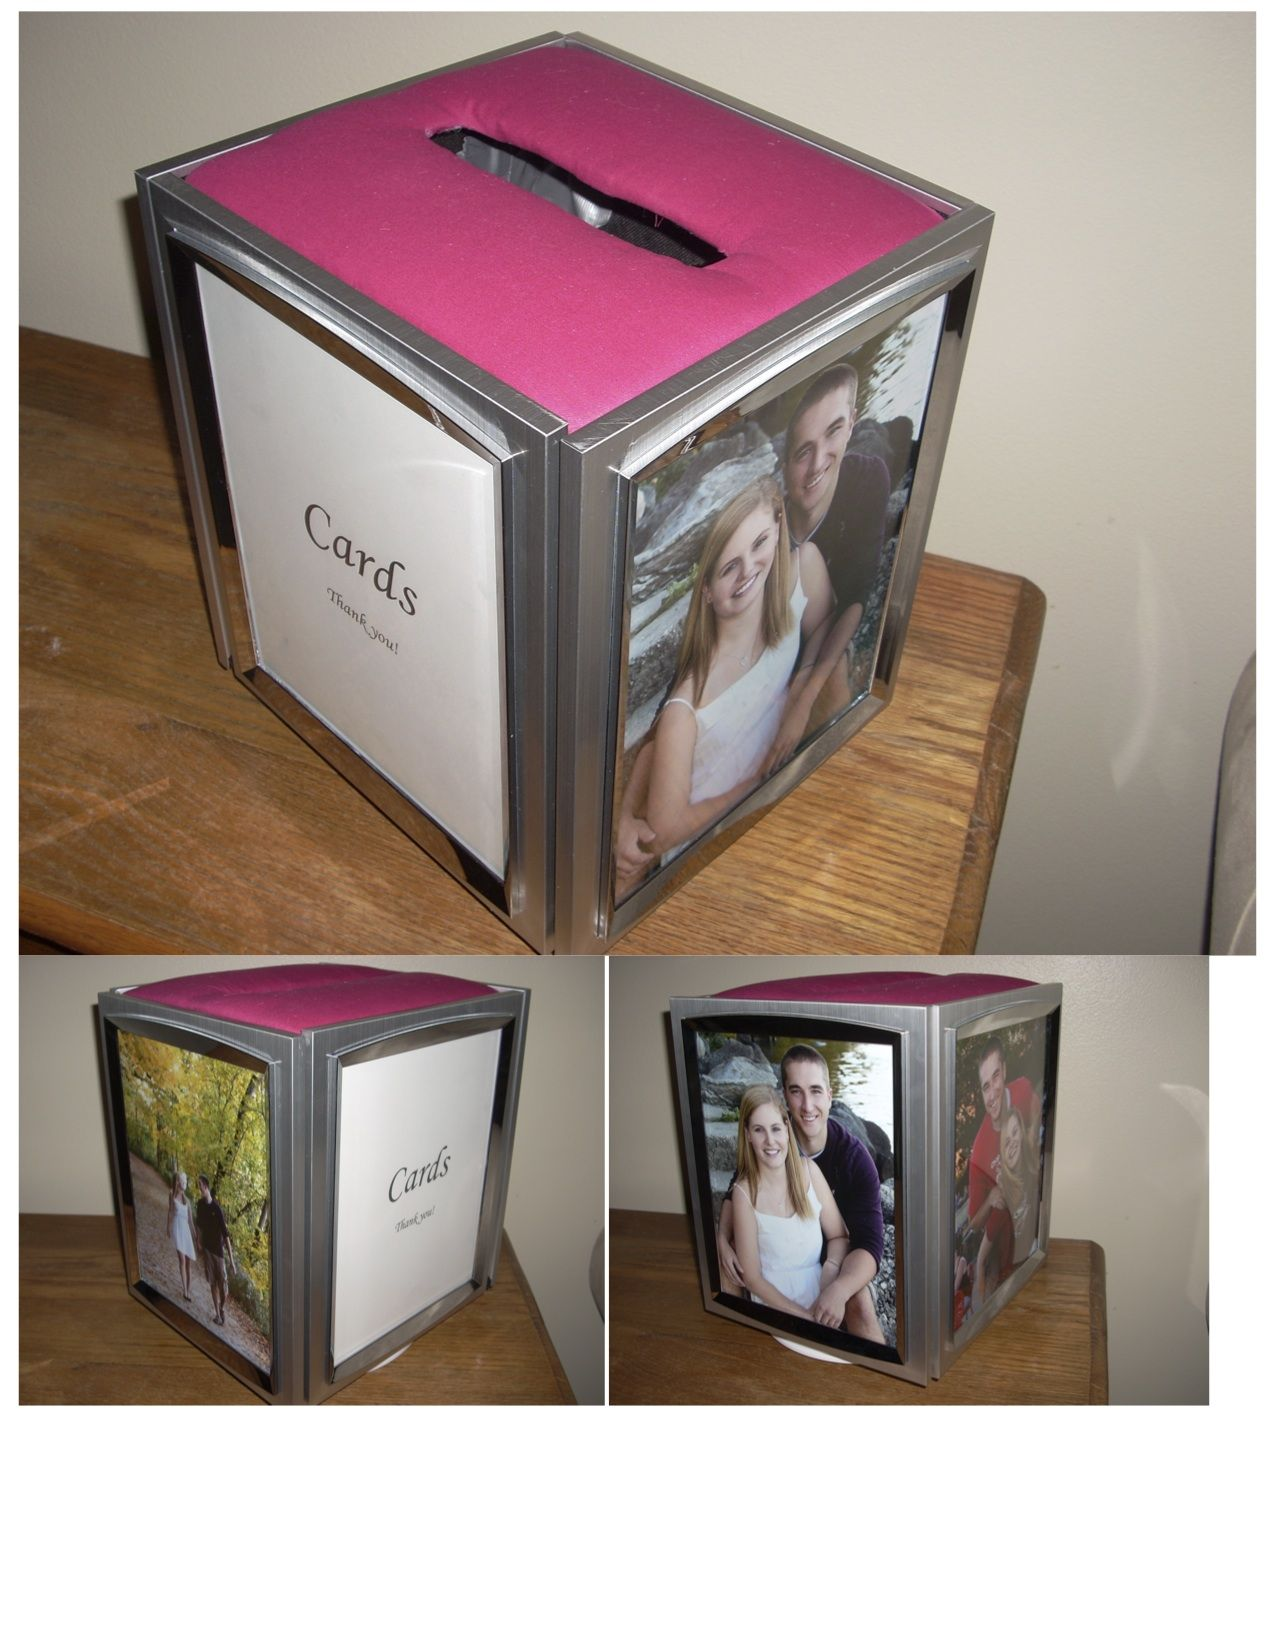 Our card box made out of picture frames that we can reuse